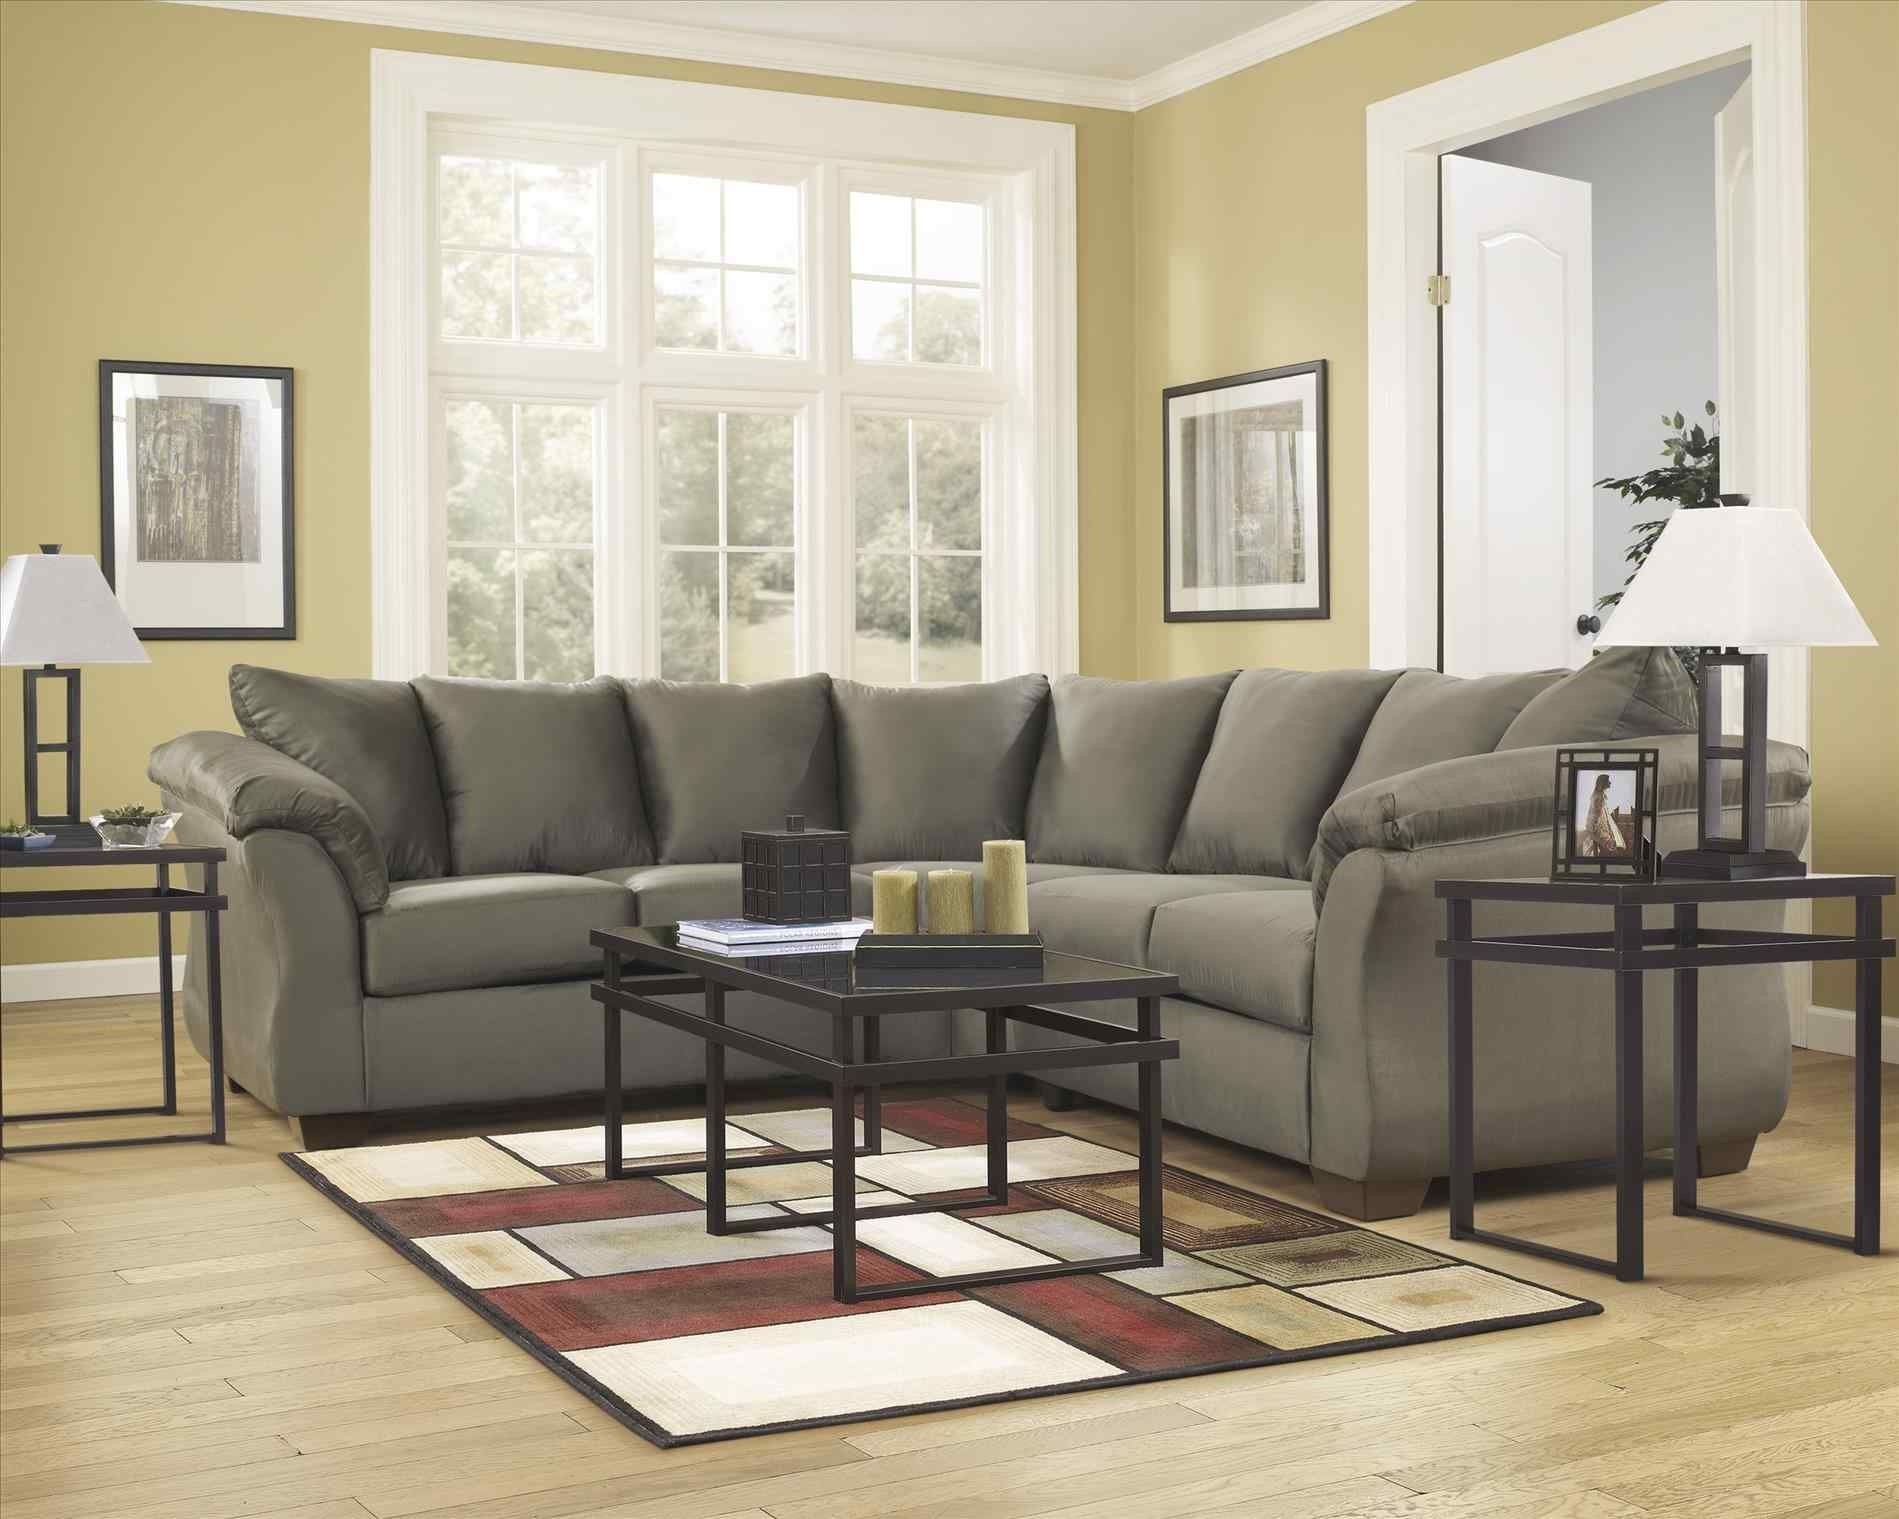 And Extraordinary Large Leather For Ashley Furniture Sectional Sofa Prices S Ideas